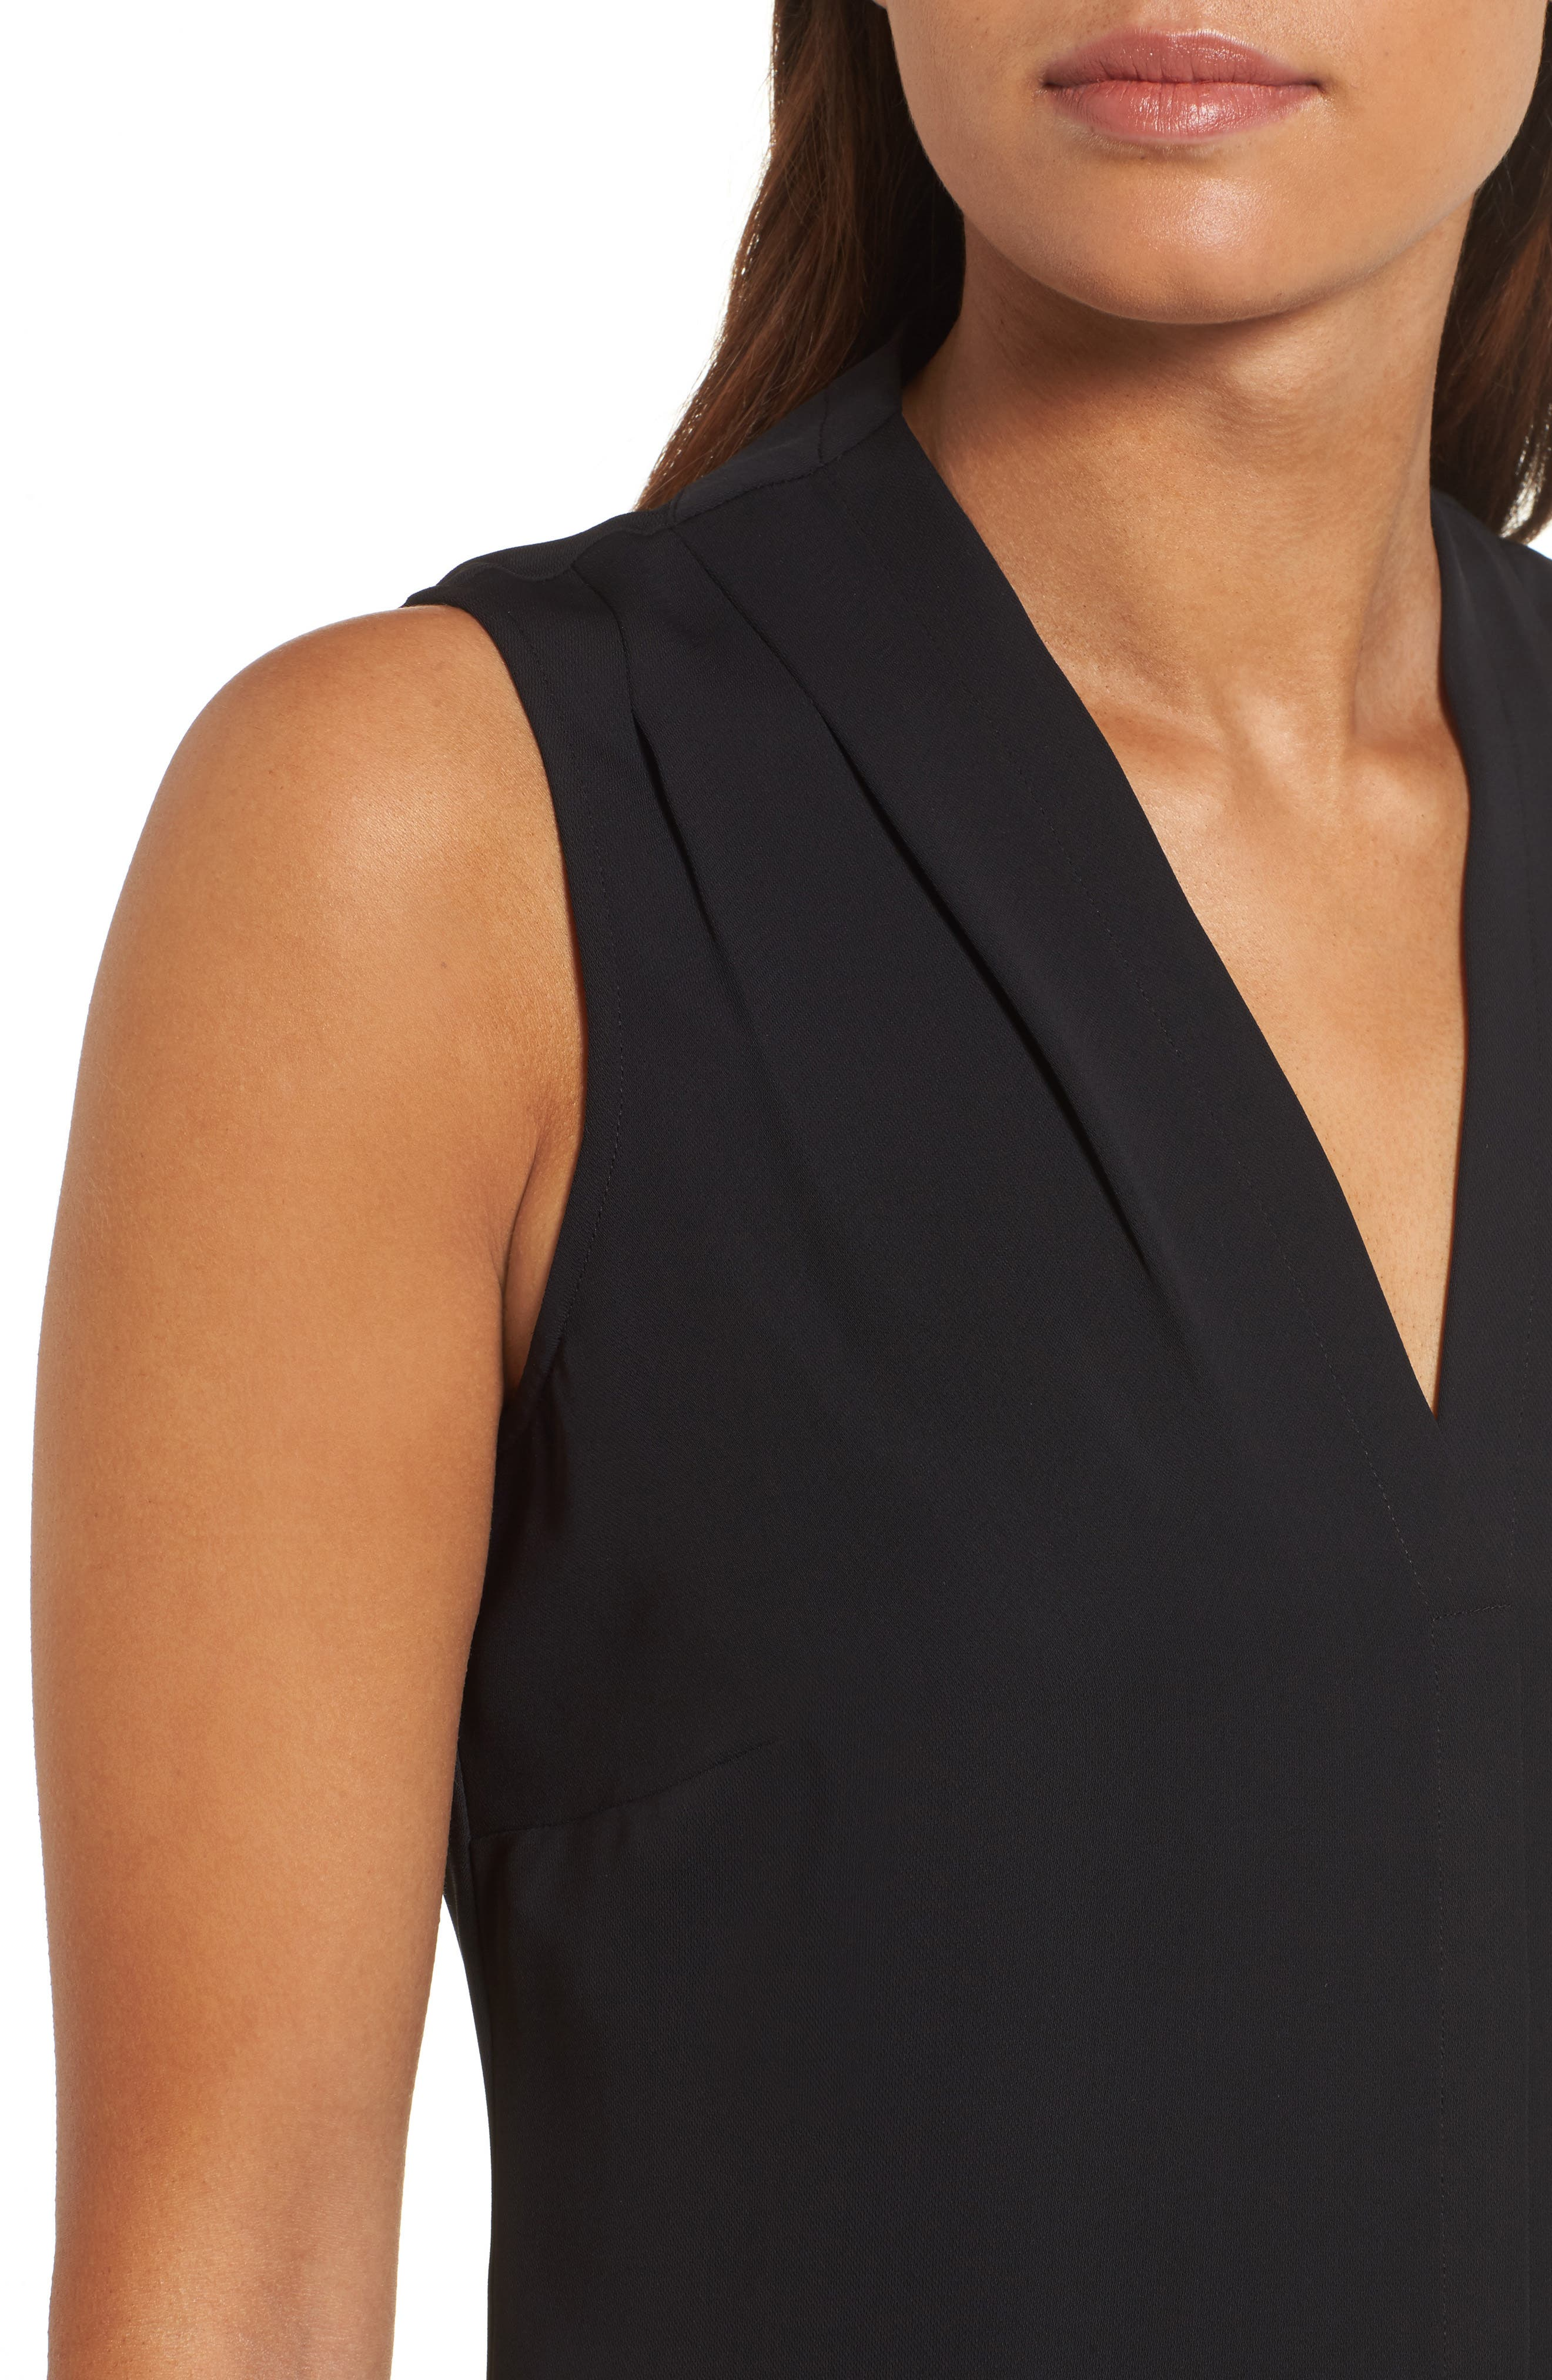 Day to Night Top,                             Alternate thumbnail 4, color,                             BLACK ONYX